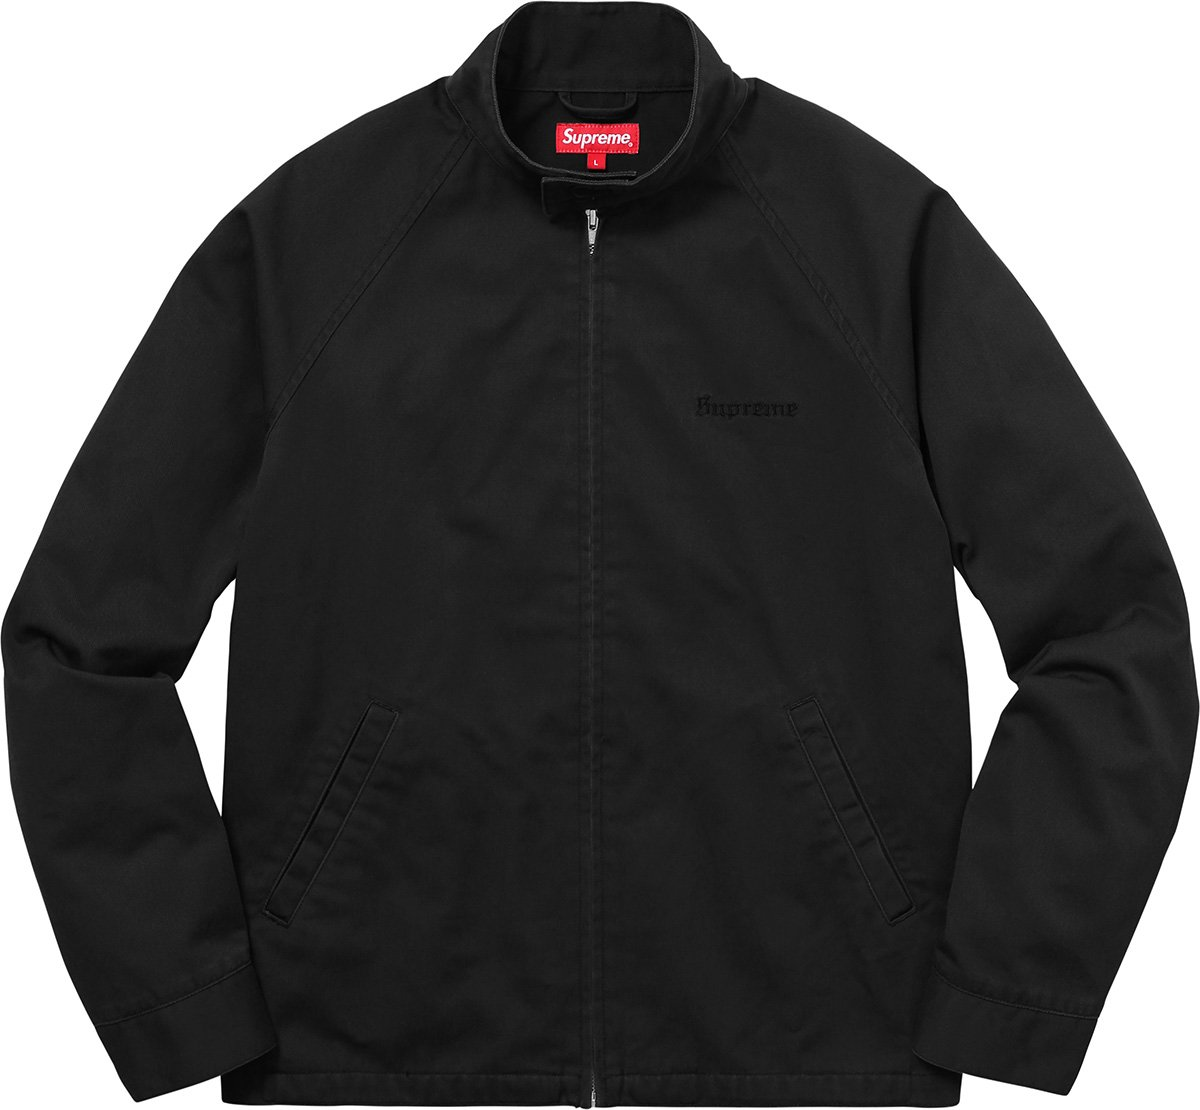 supreme-2017aw-fall-winter-chief-harrington-jacket